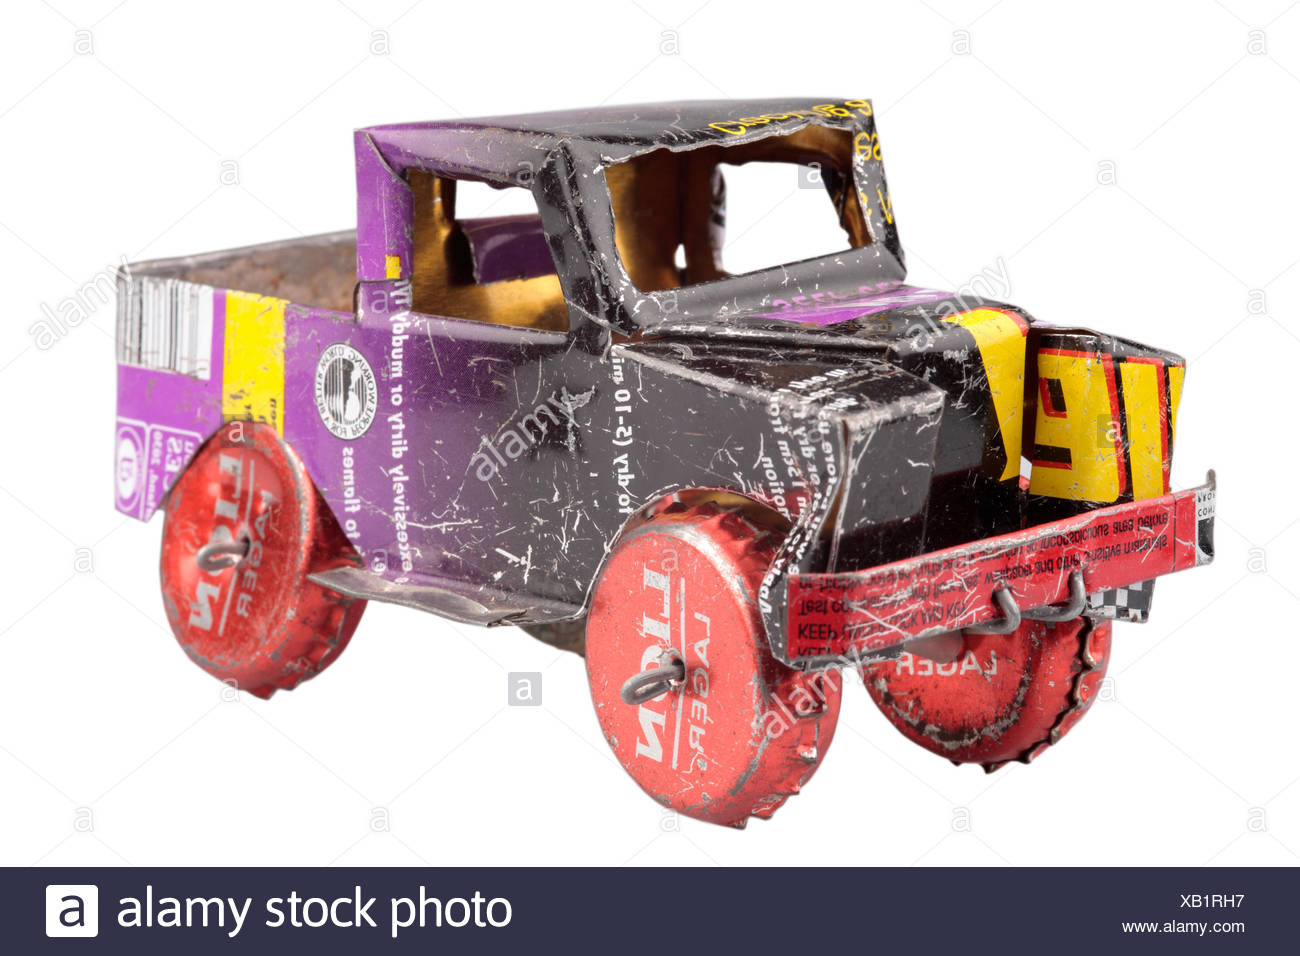 nobody, no one, no-one, drinks cans, metal, recycling, upcycling, resourceful, resourcefulness, toy car, toy, toy truck, childhood, vehicle, transportation, transport - Stock Image